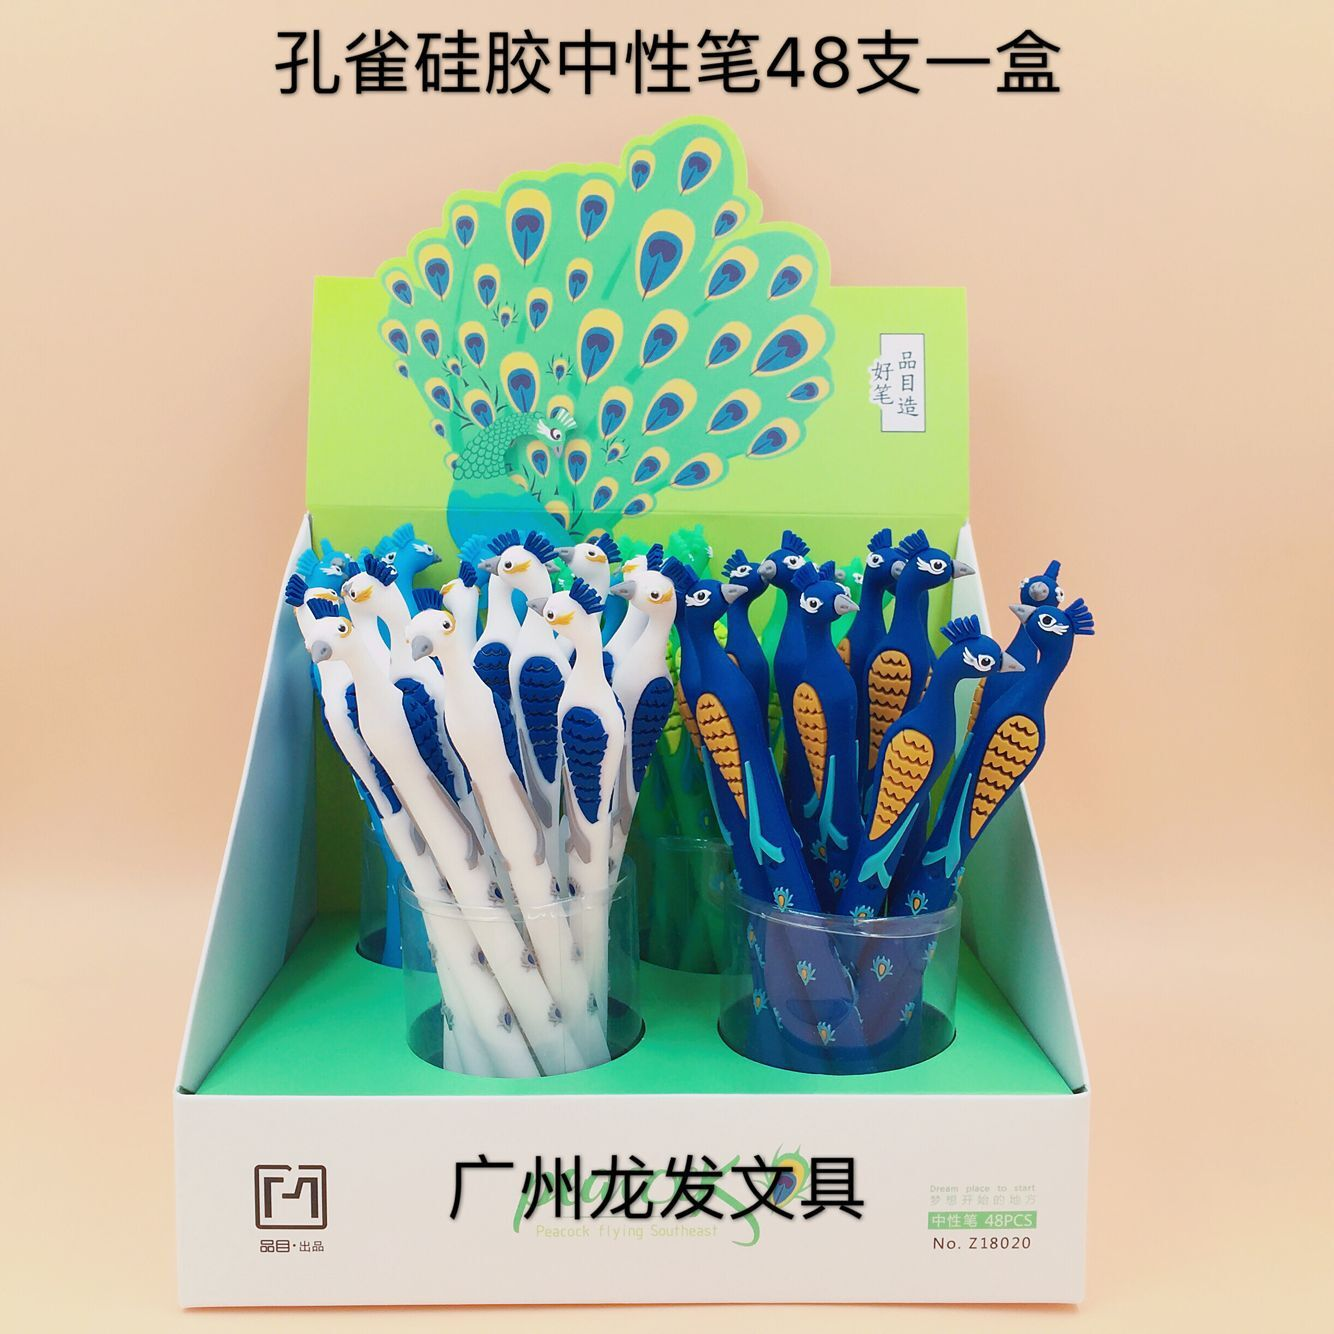 48 pcs Gel Pens Kawaii Silicone peacock black colored gel inkpens for writing Cute stationery office school supplies-in Gel Pens from Office & School Supplies    1